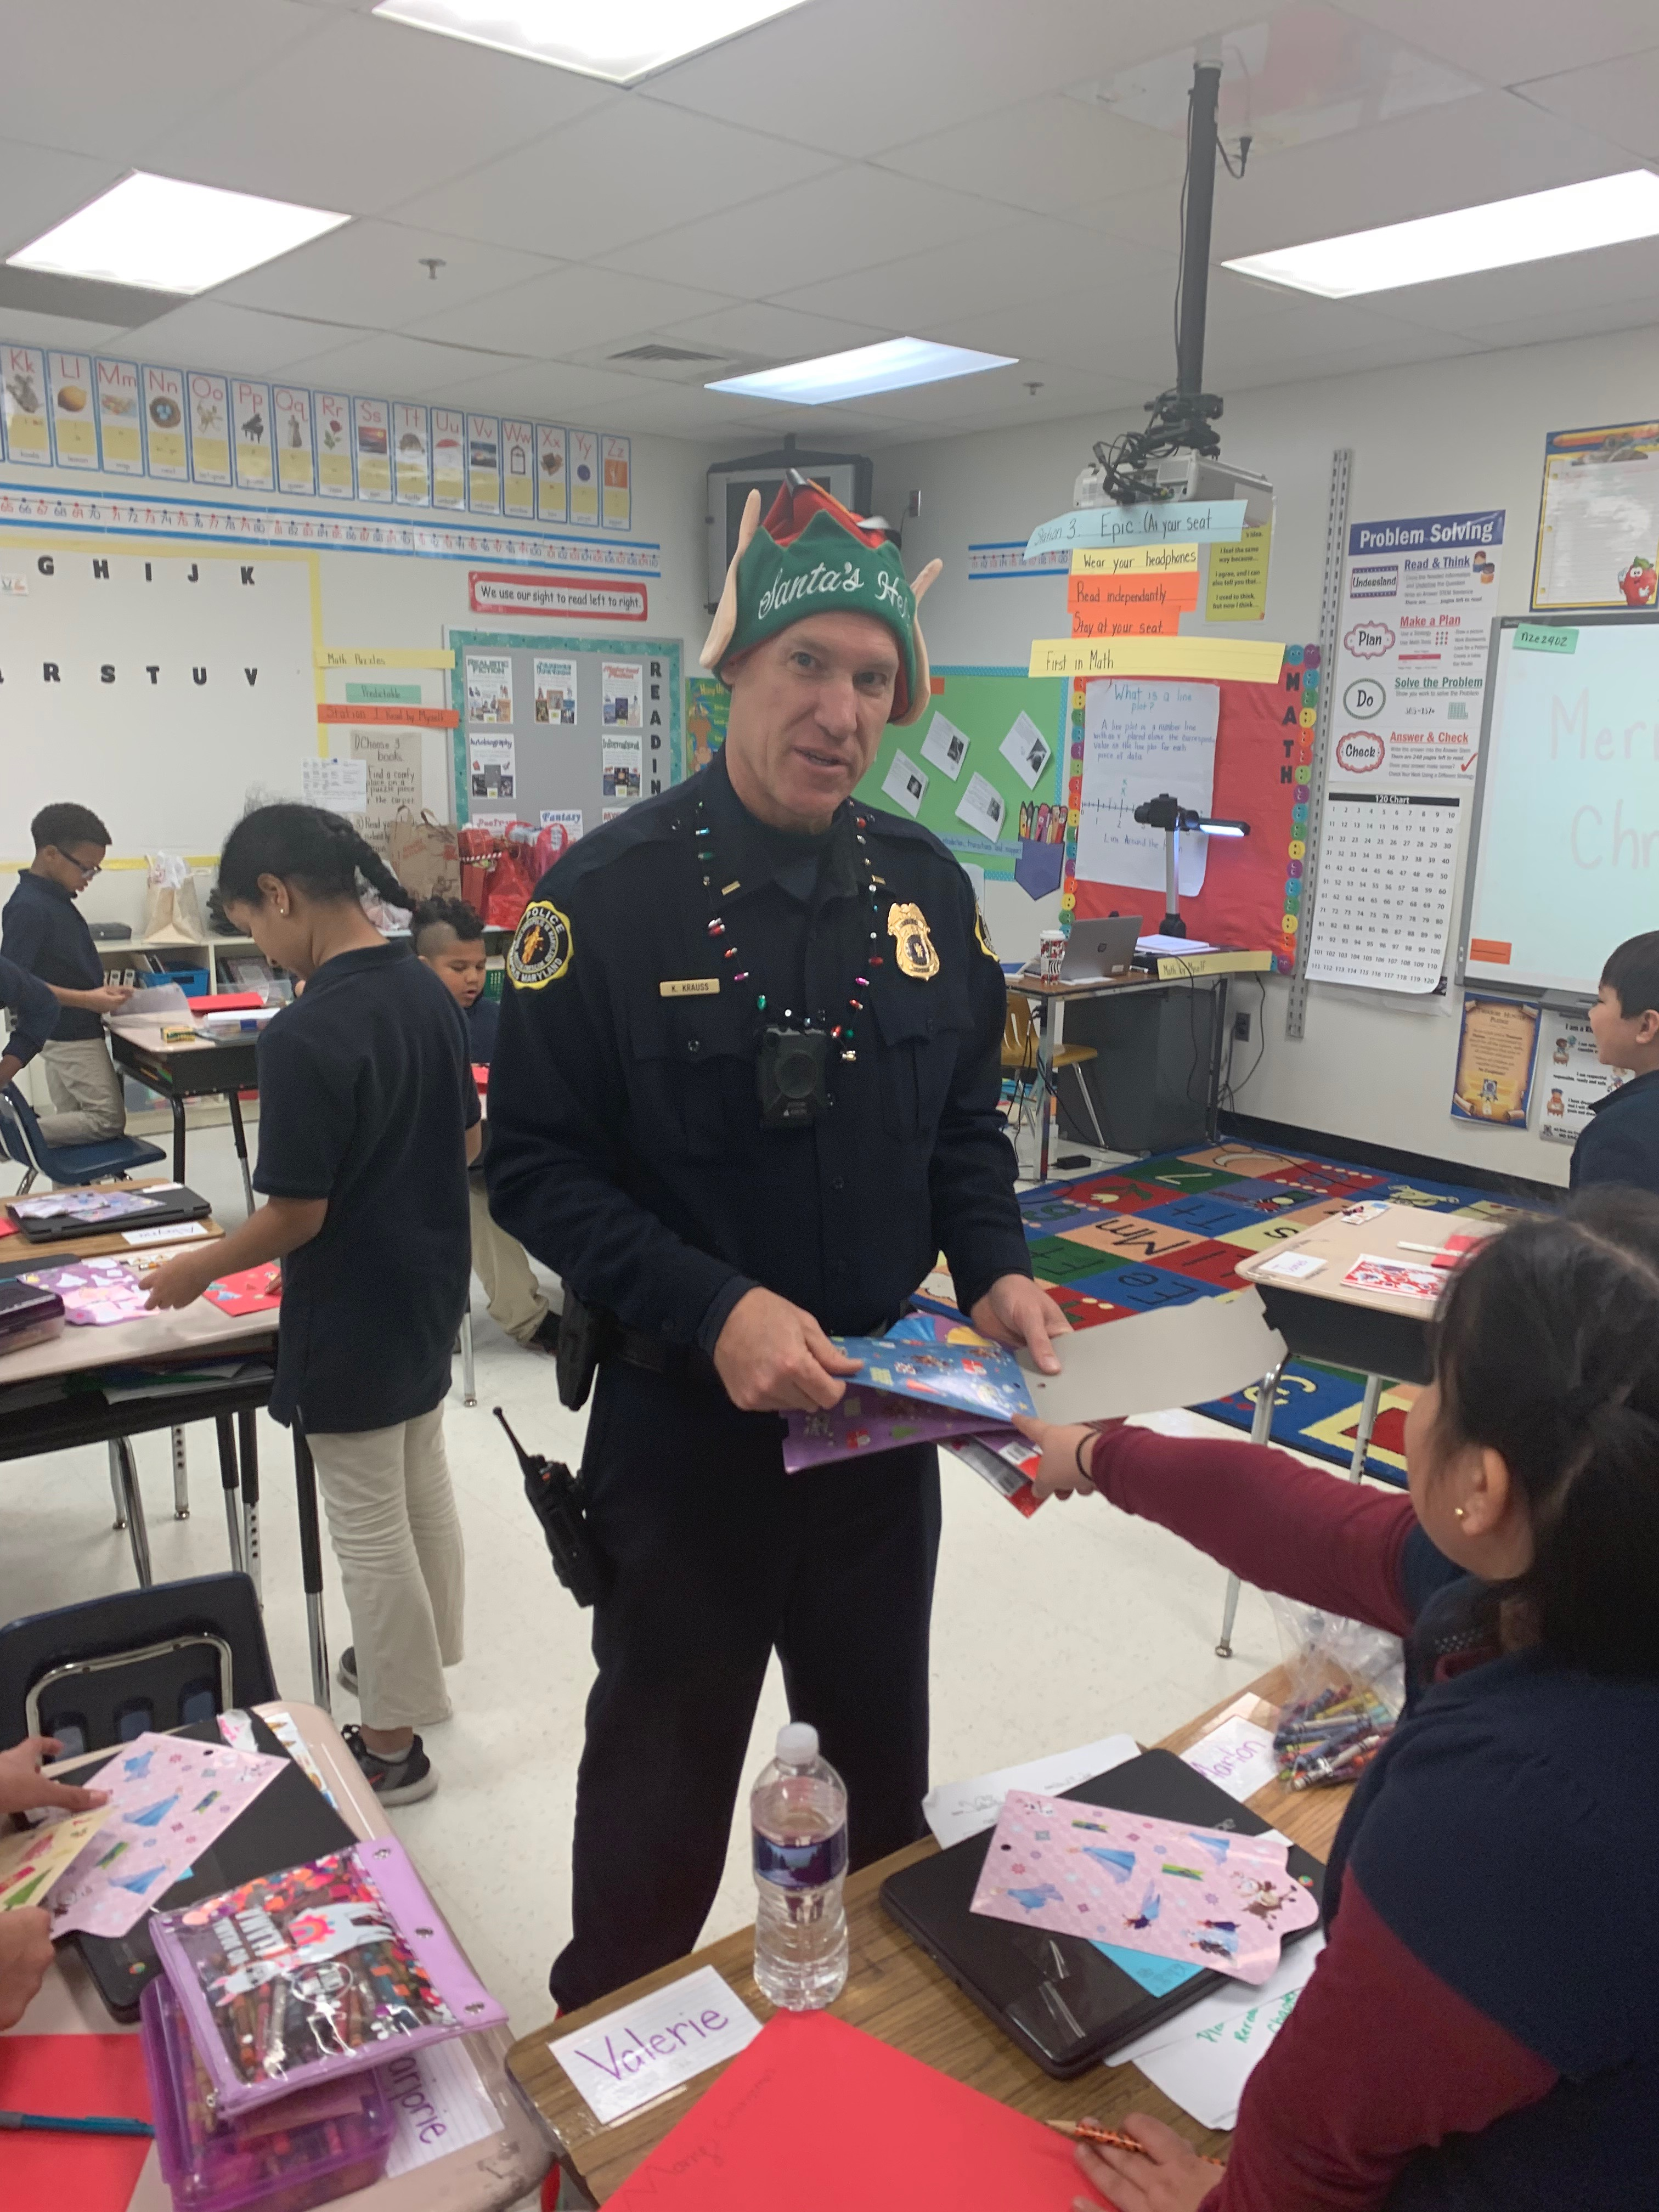 Officer wearing elf hat and shoes standing in a classroom.